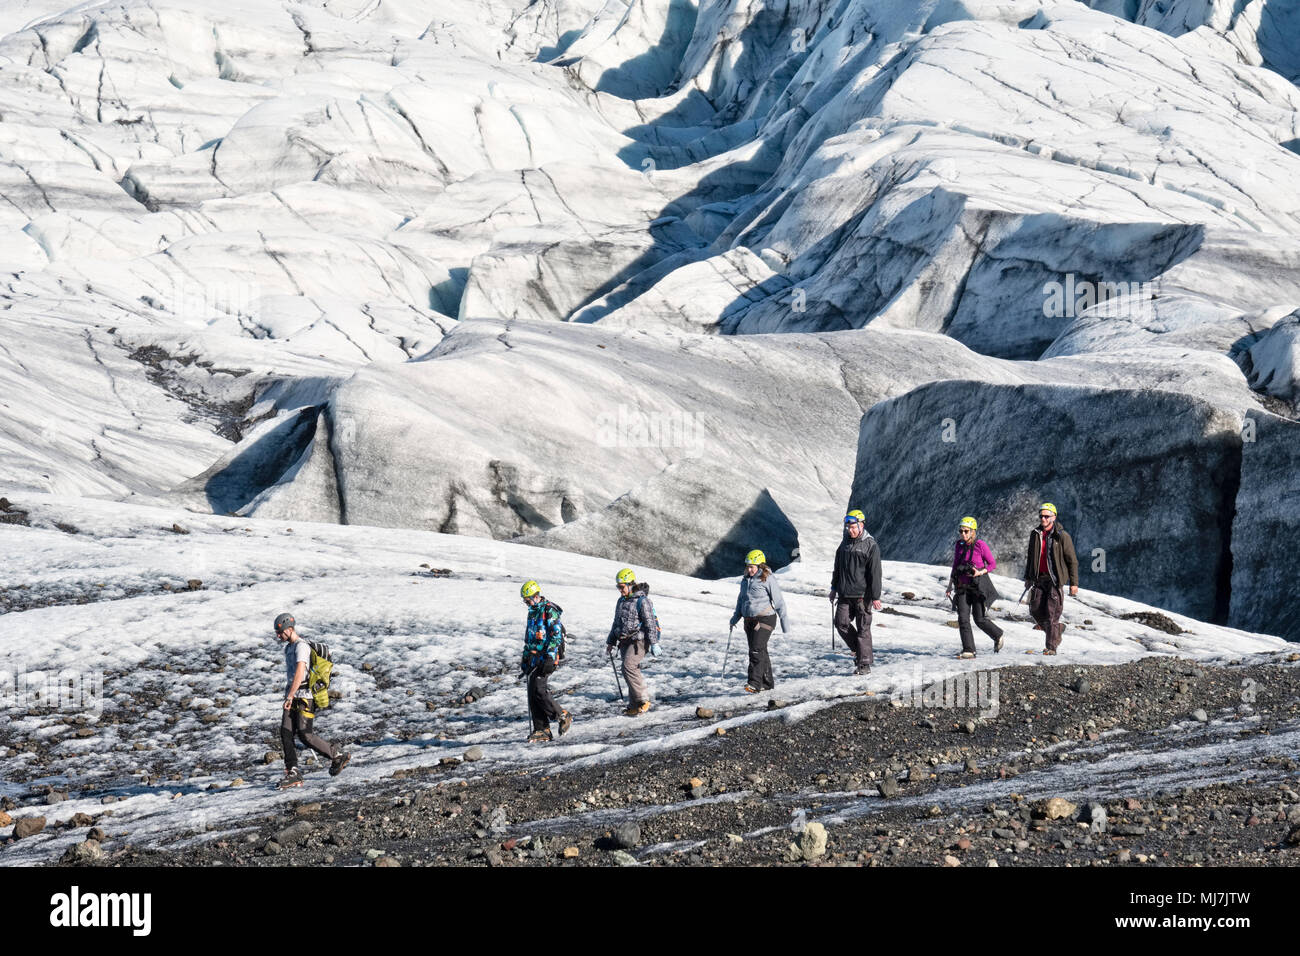 Skaftafell, Iceland. A group of tourists hiking on part of the Svínafellsjökull glacier 'tongue' - Stock Image